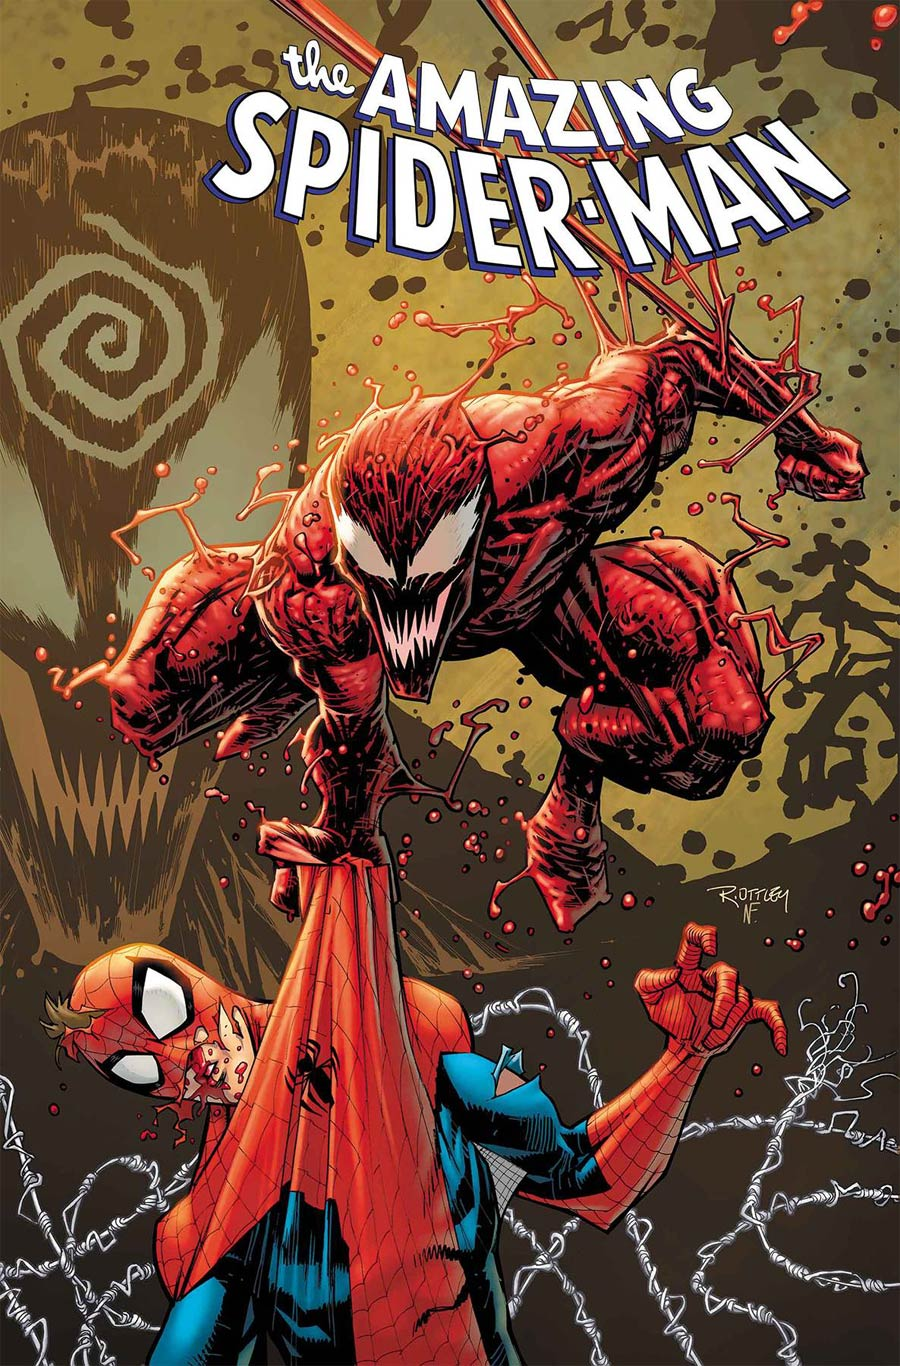 Amazing Spider-Man Vol 5 #30 Cover A Regular Ryan Ottley Cover (Absolute Carnage Tie-In)